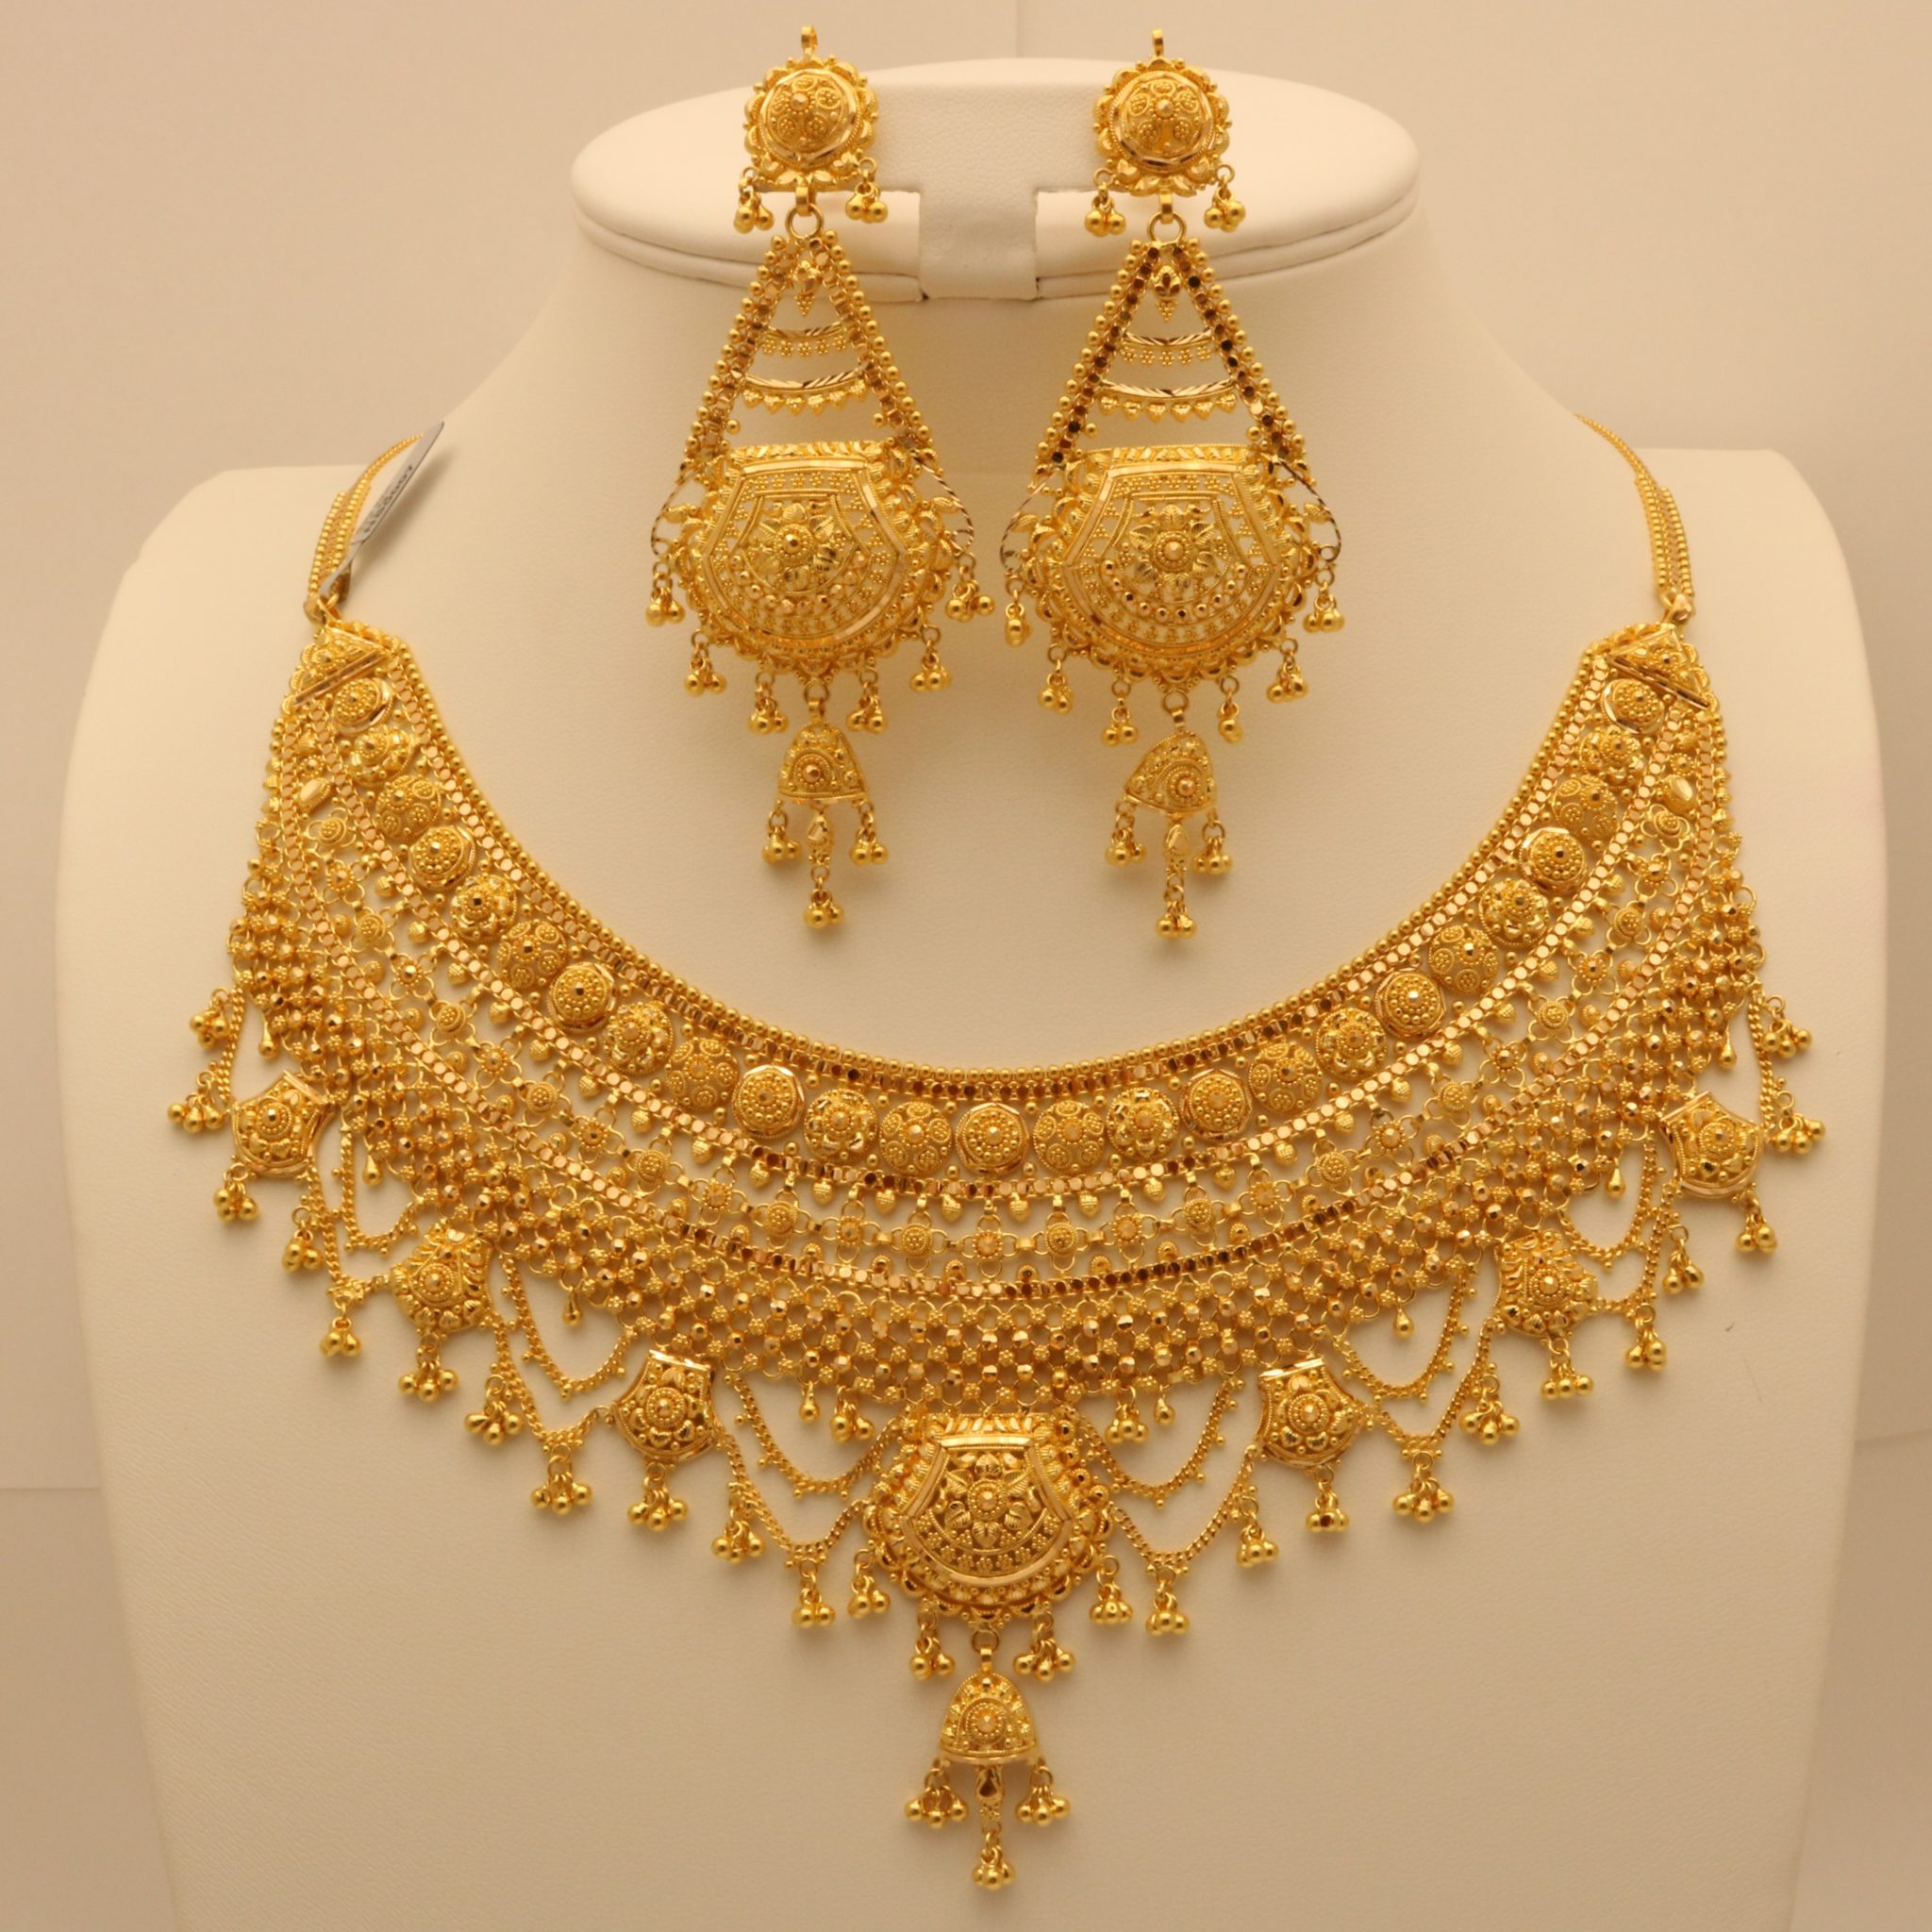 sets set b bridal sardarji for img rent jewellery sku bridalsets weddings bentex on antique